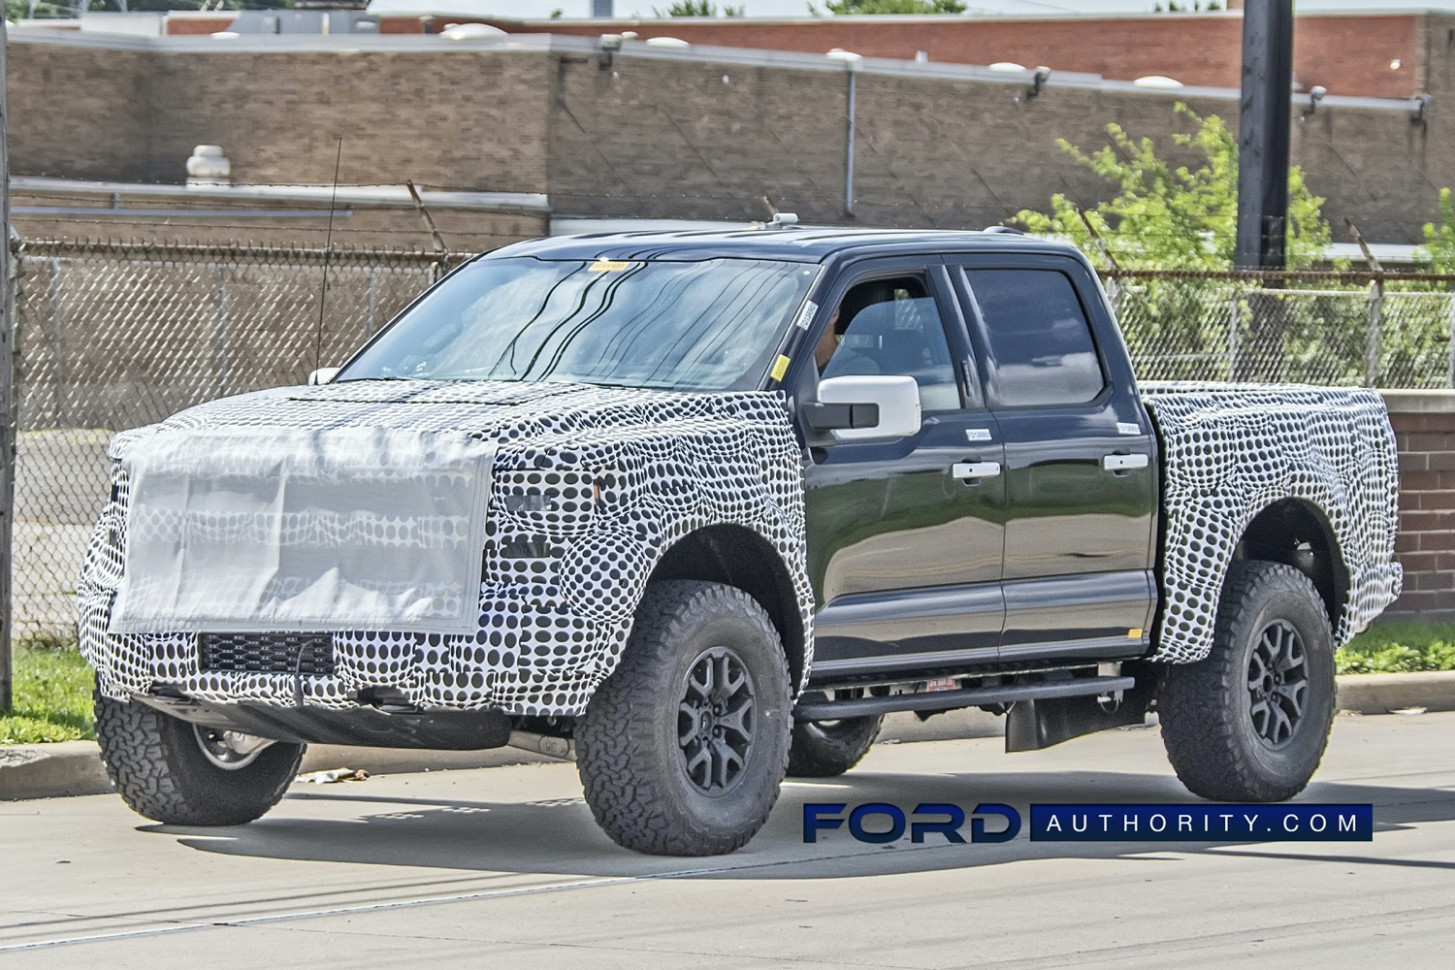 Wallpaper Ford Raptor 2022